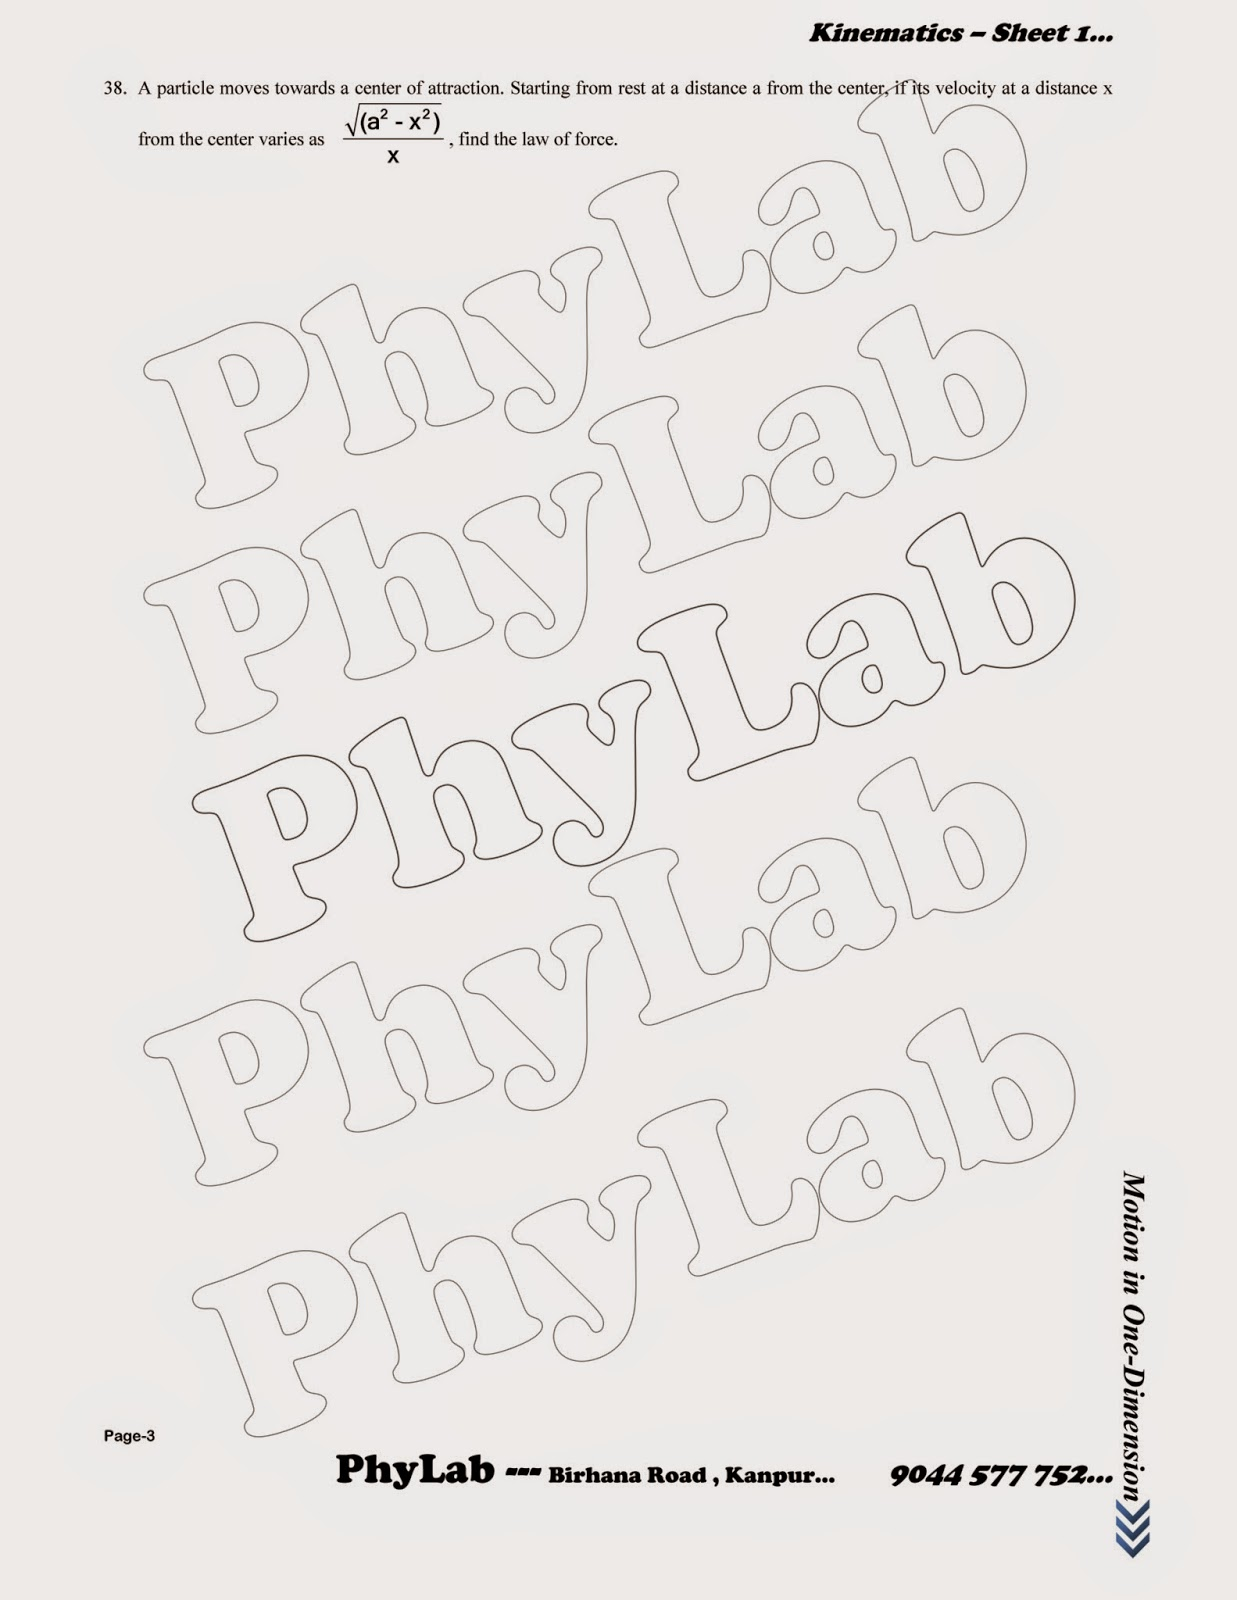 PhyLab-Educate: Q.Bank on Motion in 1-Dimension